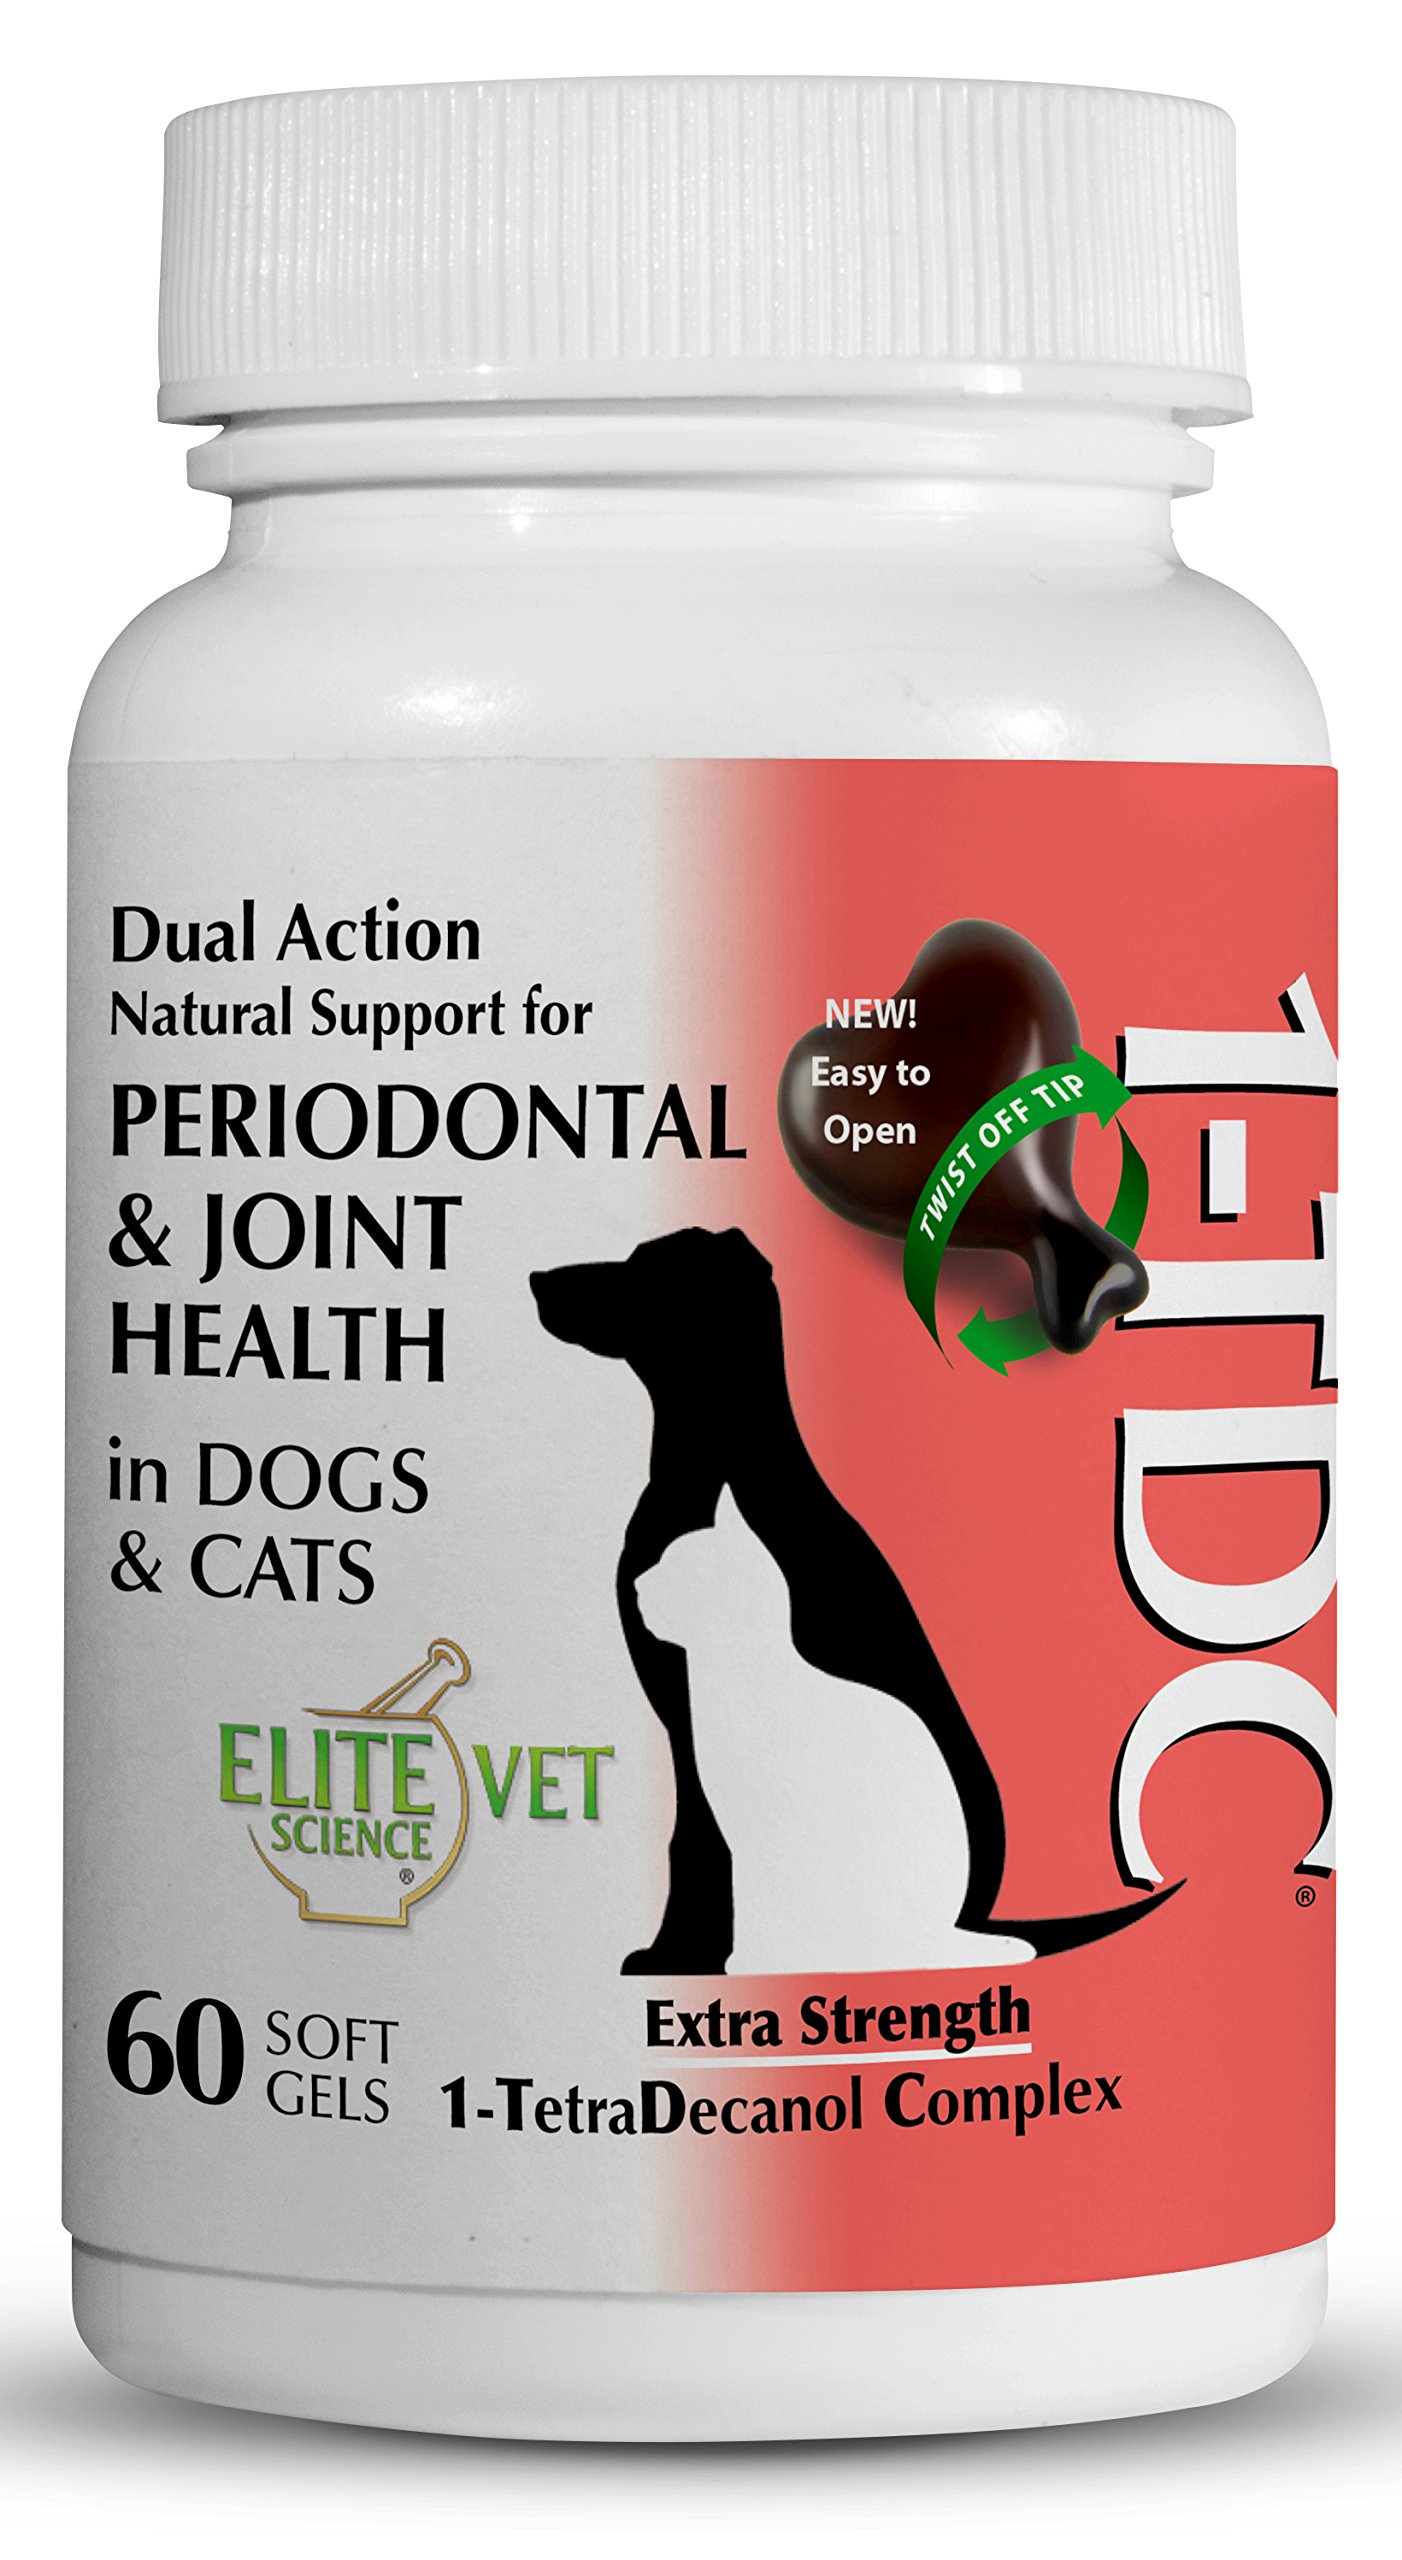 1TDC Dual Action Natural Support – 60 Twist Off Soft Gels | Delivers 4 Major Health Benefits for Dogs & Cats | Supports Oral Health, Hip & Joint Health, Muscle & Stamina Recovery, Skin & Coat Health